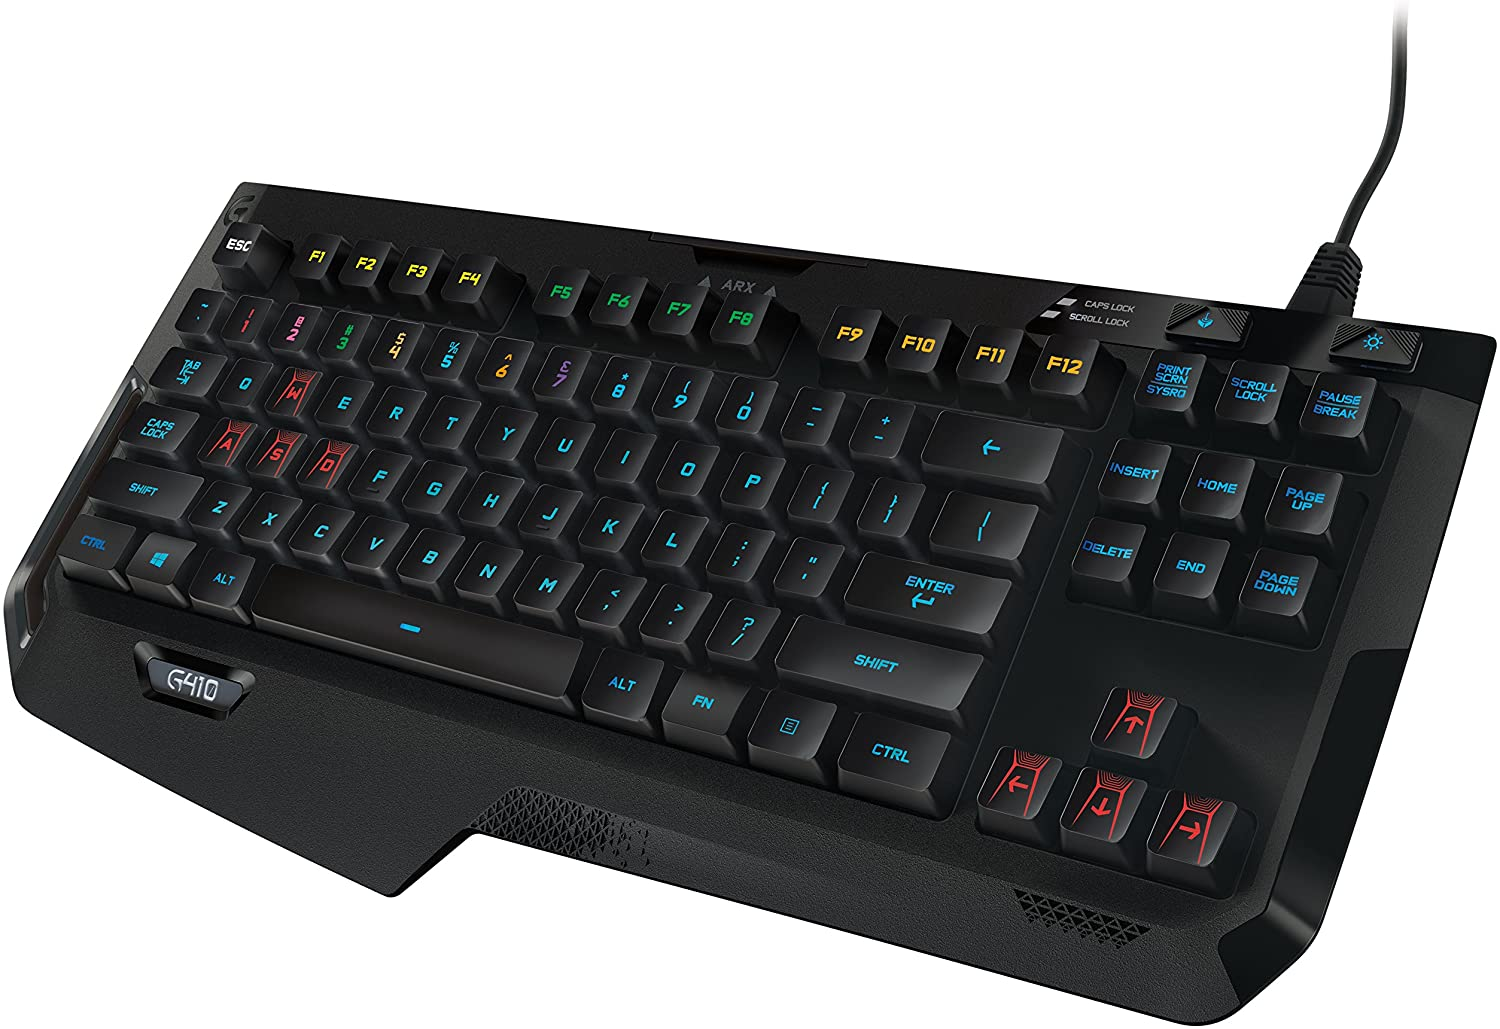 10 Best Mechanical Keyboard Under $100 - 2021 Buying Guide 8